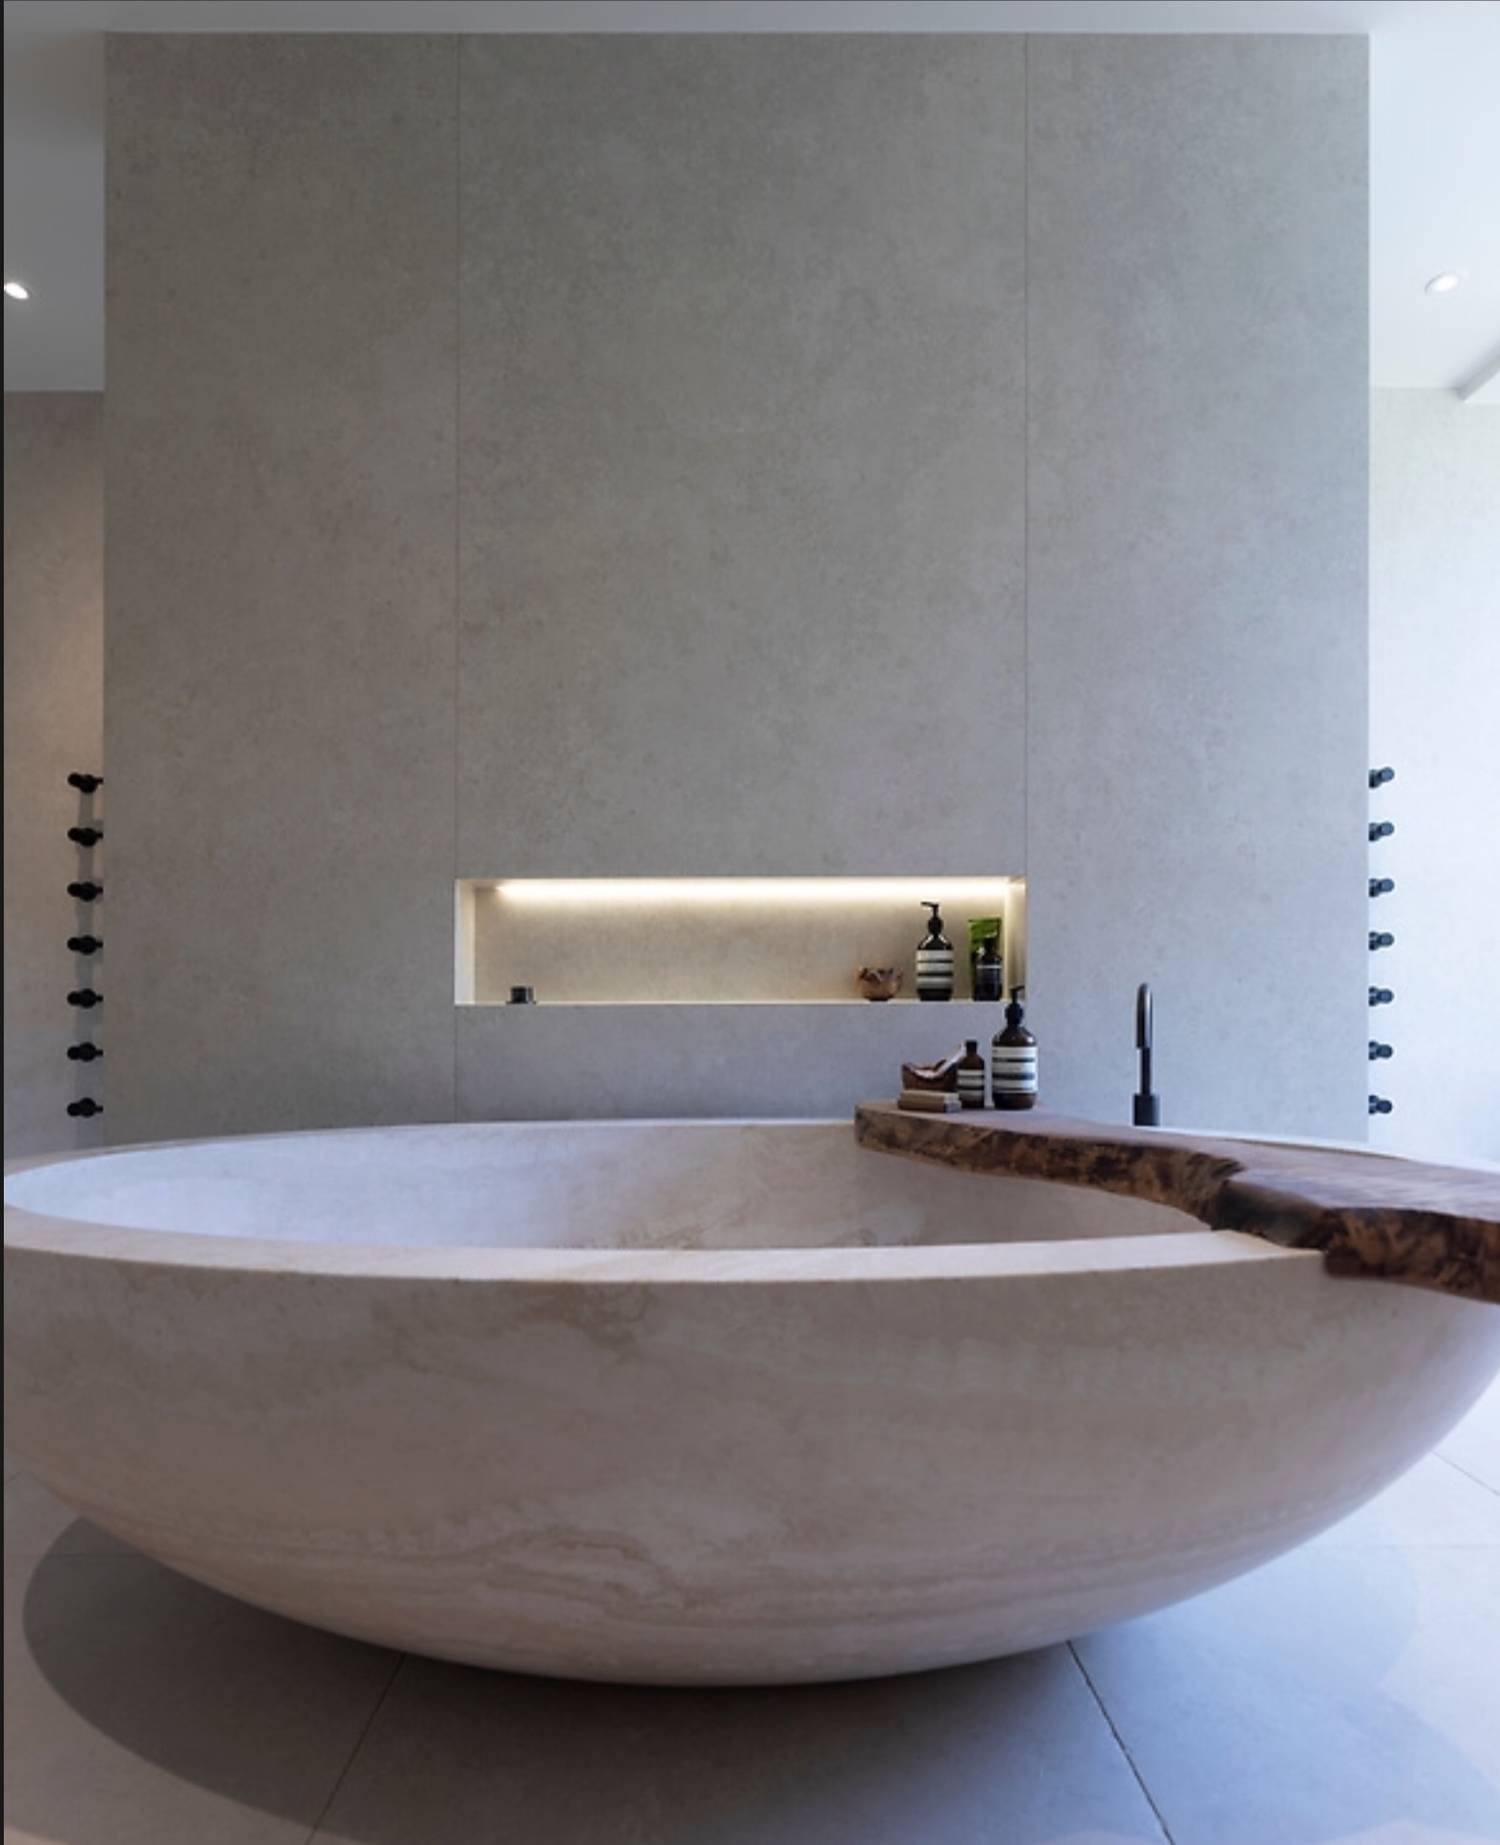 A picture of a stone bath in the centre of a master bathroom suite